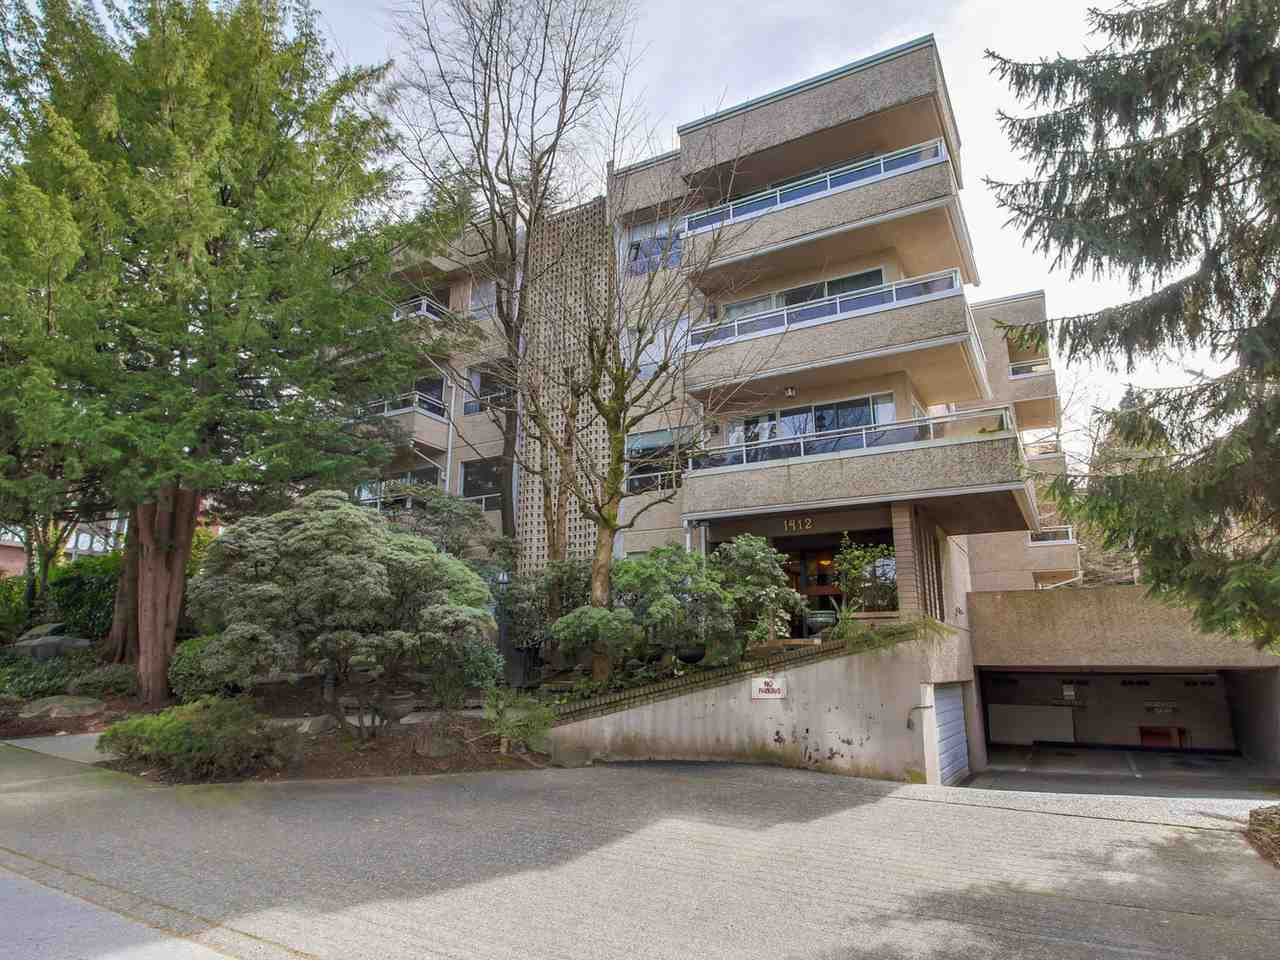 Main Photo: 103 1412 W 14TH Avenue in Vancouver: Fairview VW Condo for sale (Vancouver West)  : MLS® # R2048701